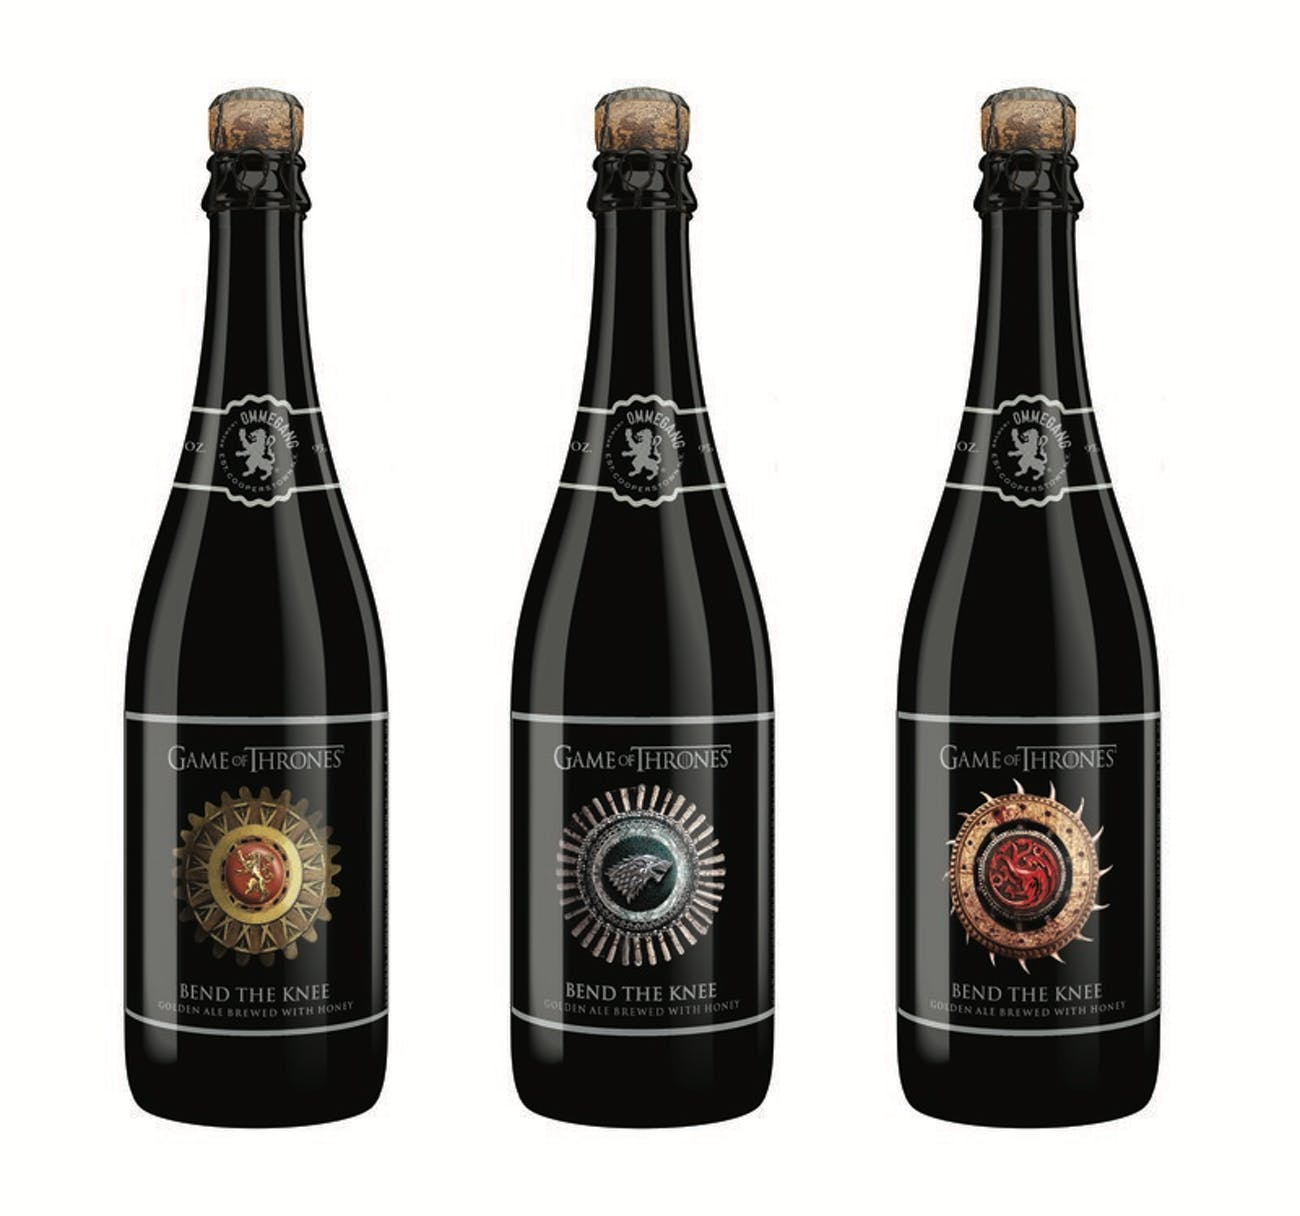 The three labels for Ommegang's new 'Game of Thrones' beer, Bend the Knee.